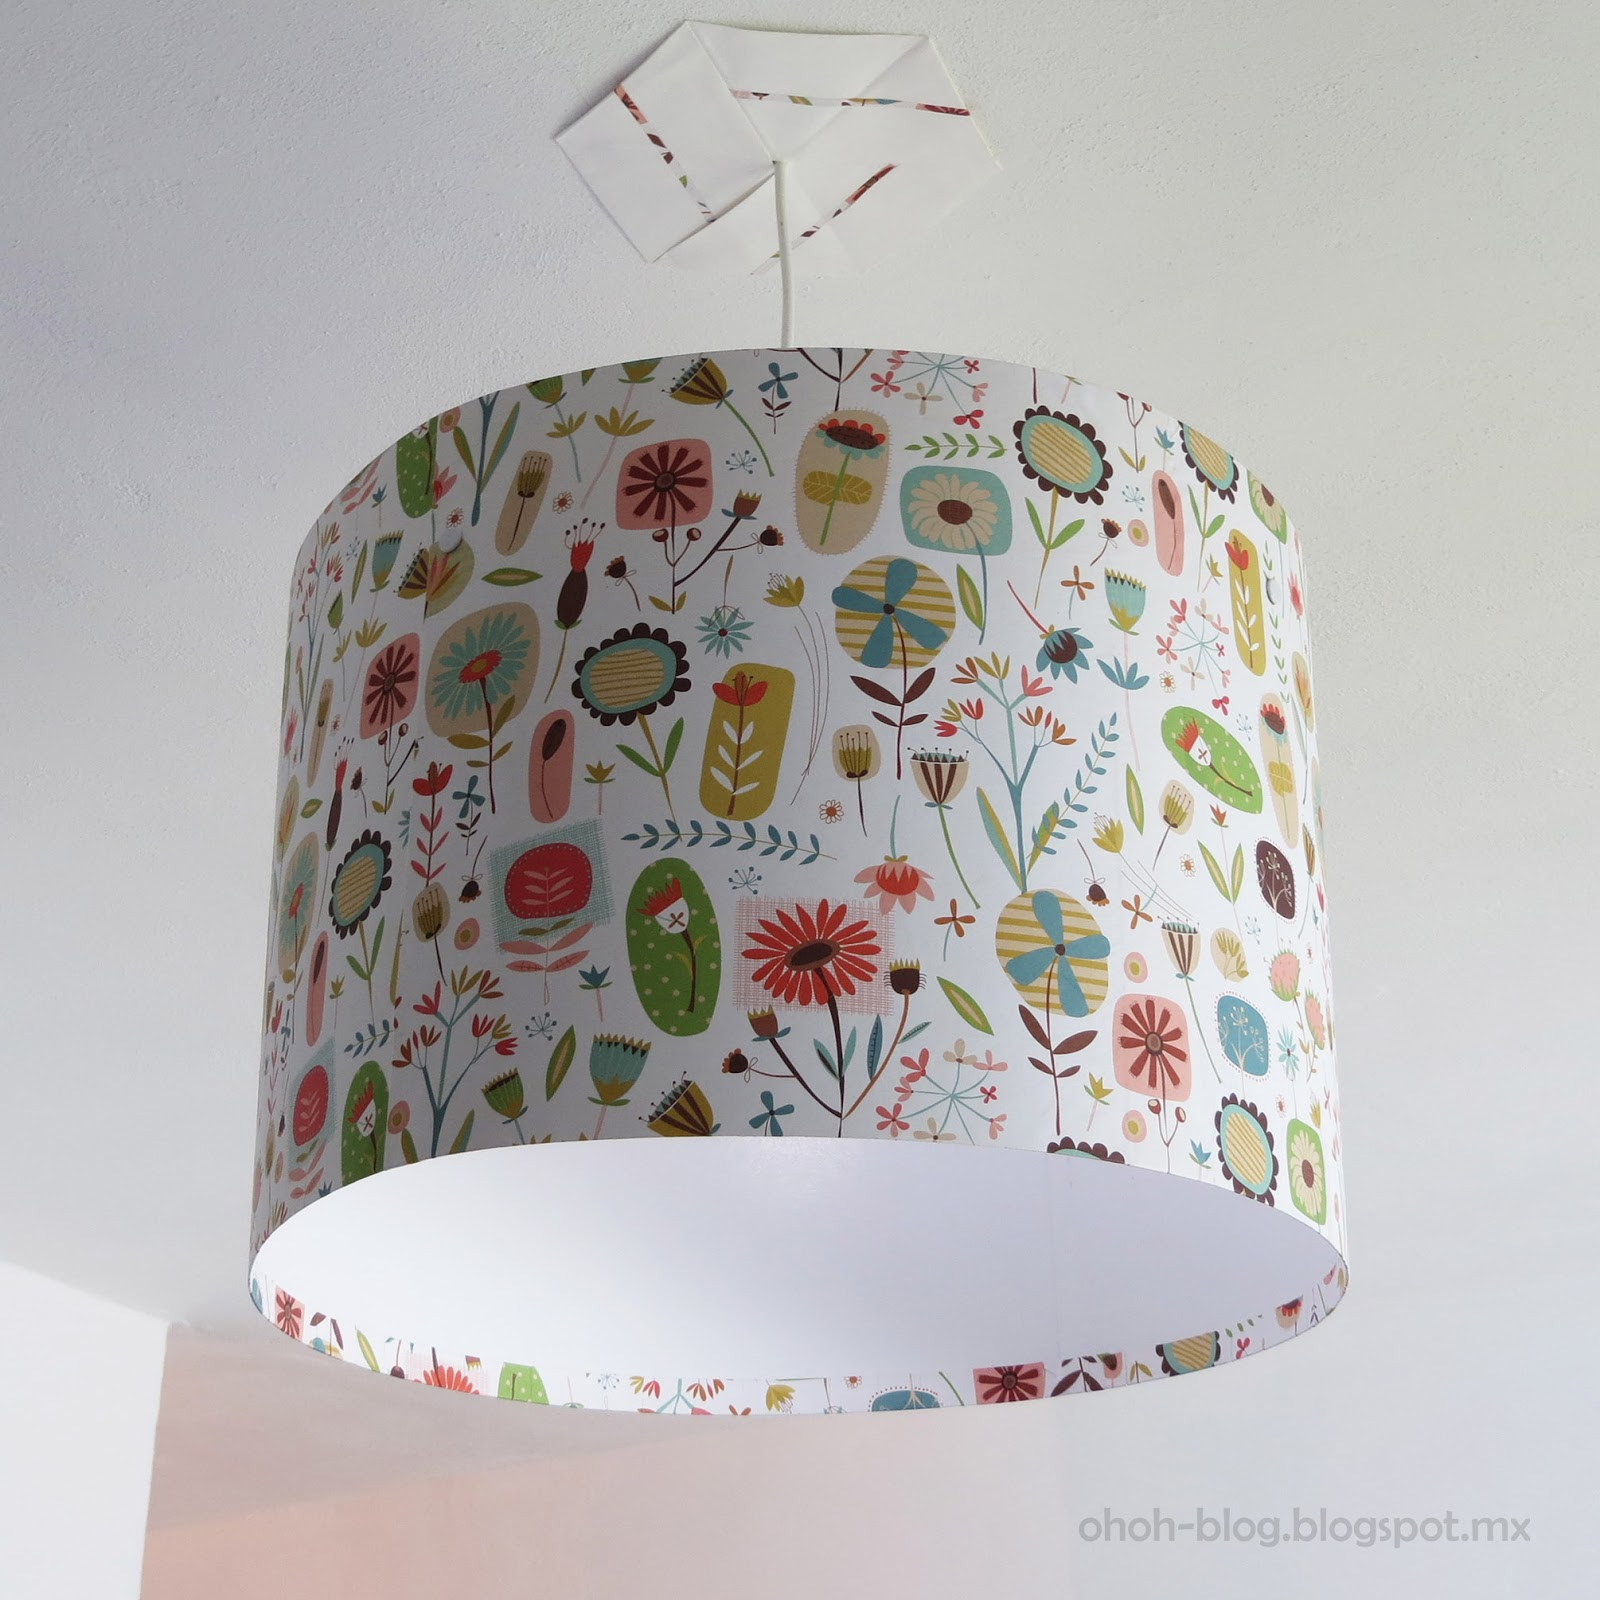 Diy lampshade pantalla ohoh blog diy and crafts - Diy lamp shade ...